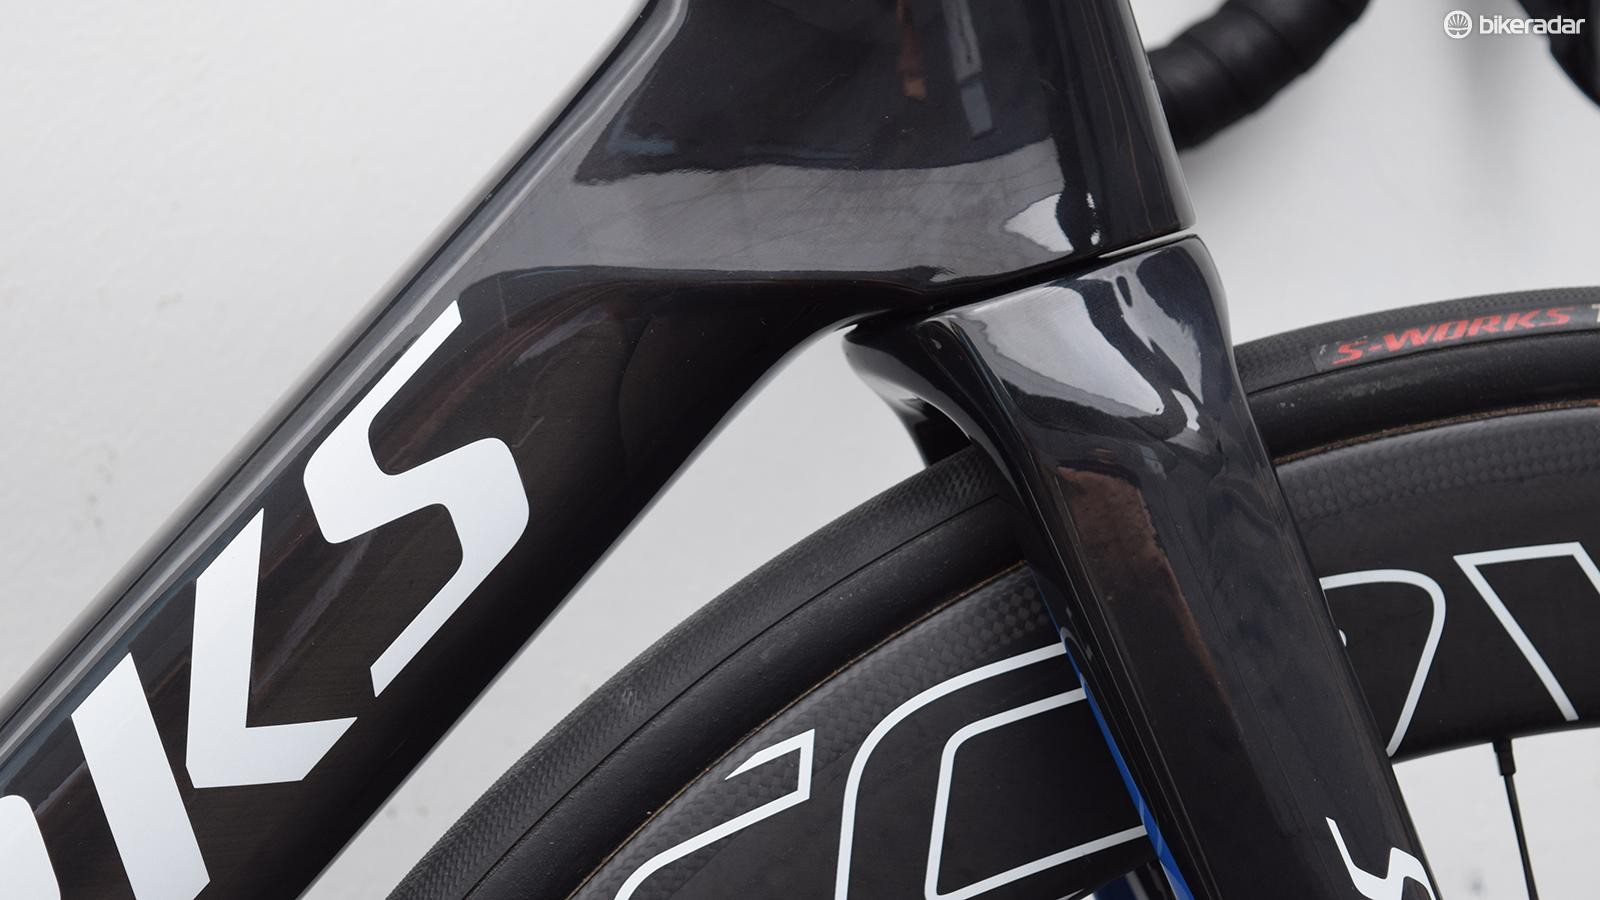 Several new aero-focused framesets feature a similar swoop on the down tube away from the fork crown